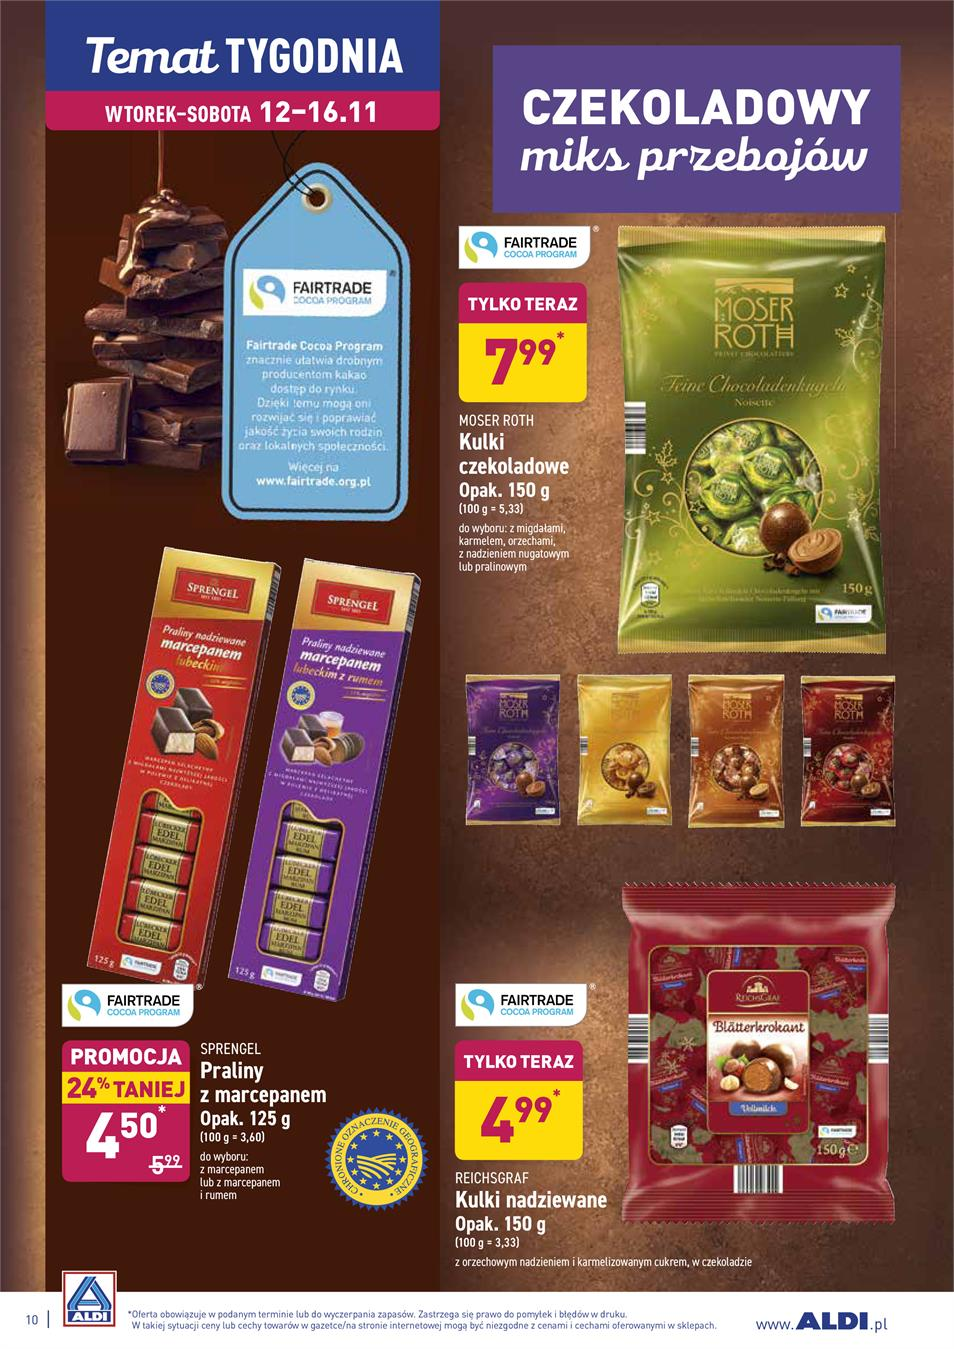 Gazetka ALDI SP Z O O  nr 10 od 2019-11-12 do 2019-11-16